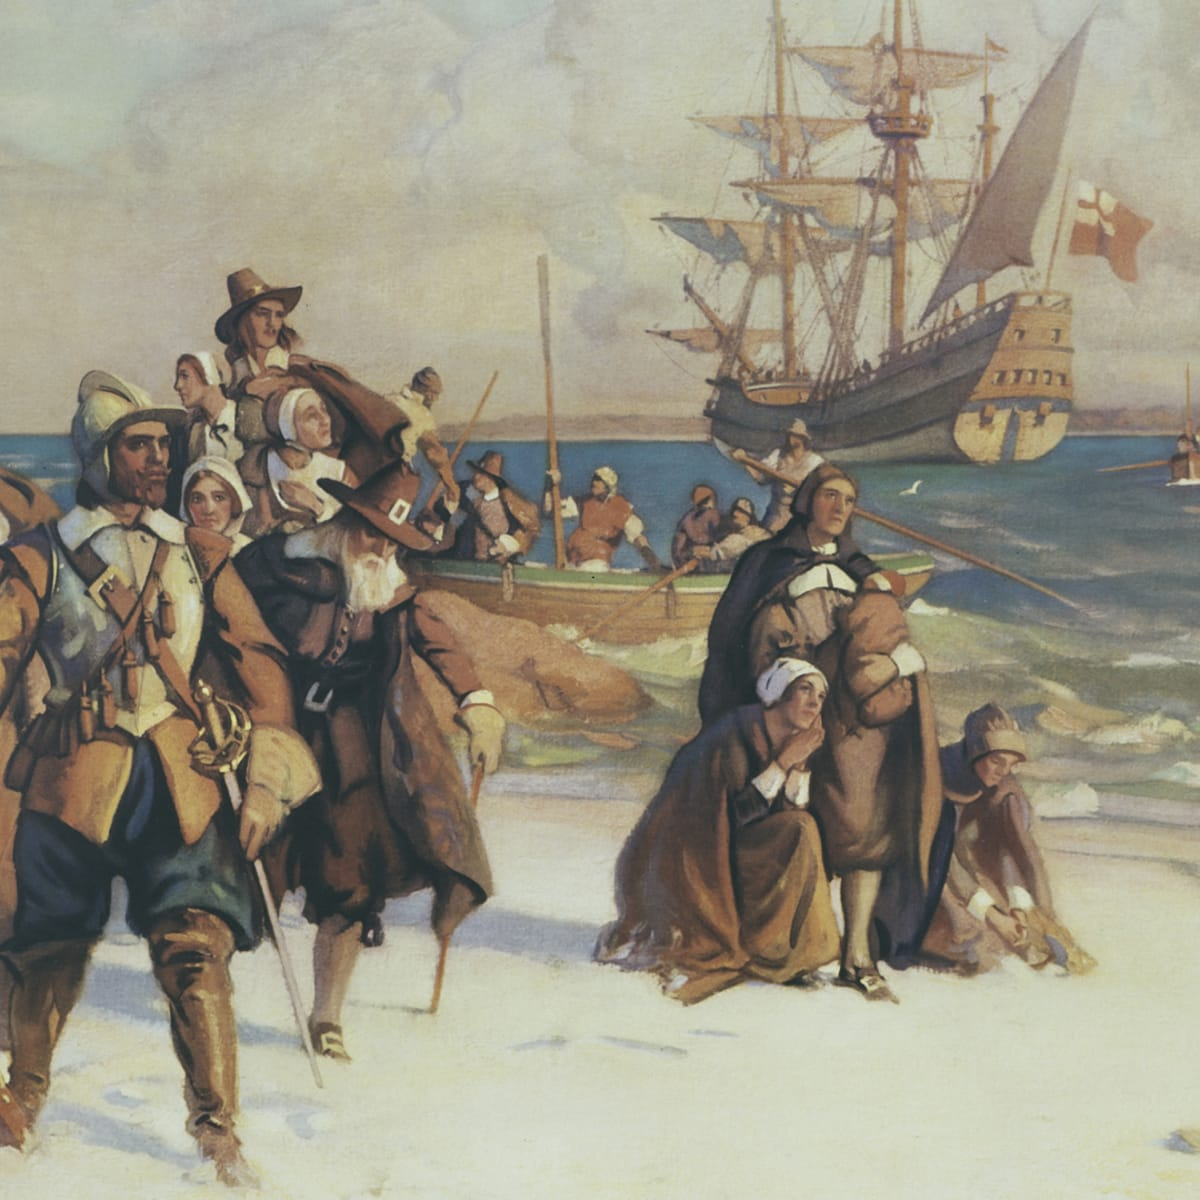 Why Did The Pilgrims Travel To New World